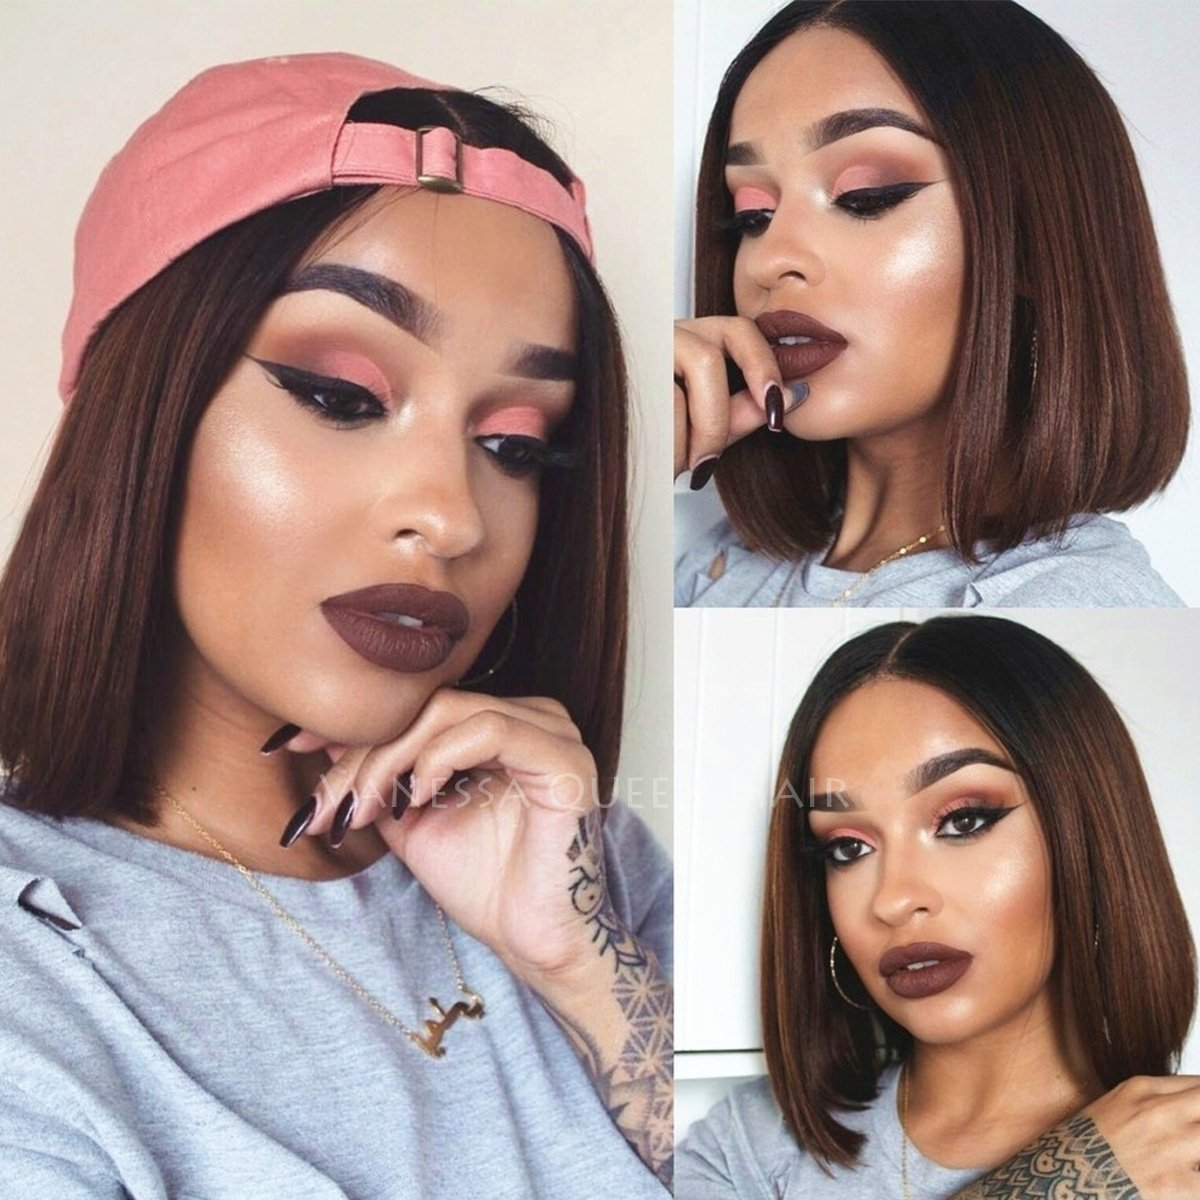 Maycaur Short Straight Human Hair Wigs Ombre Brown Lace Front Wigs Bob Full Lace Wigs For Black Women 150 Density(10inch lace front wig) Vanessa Queen